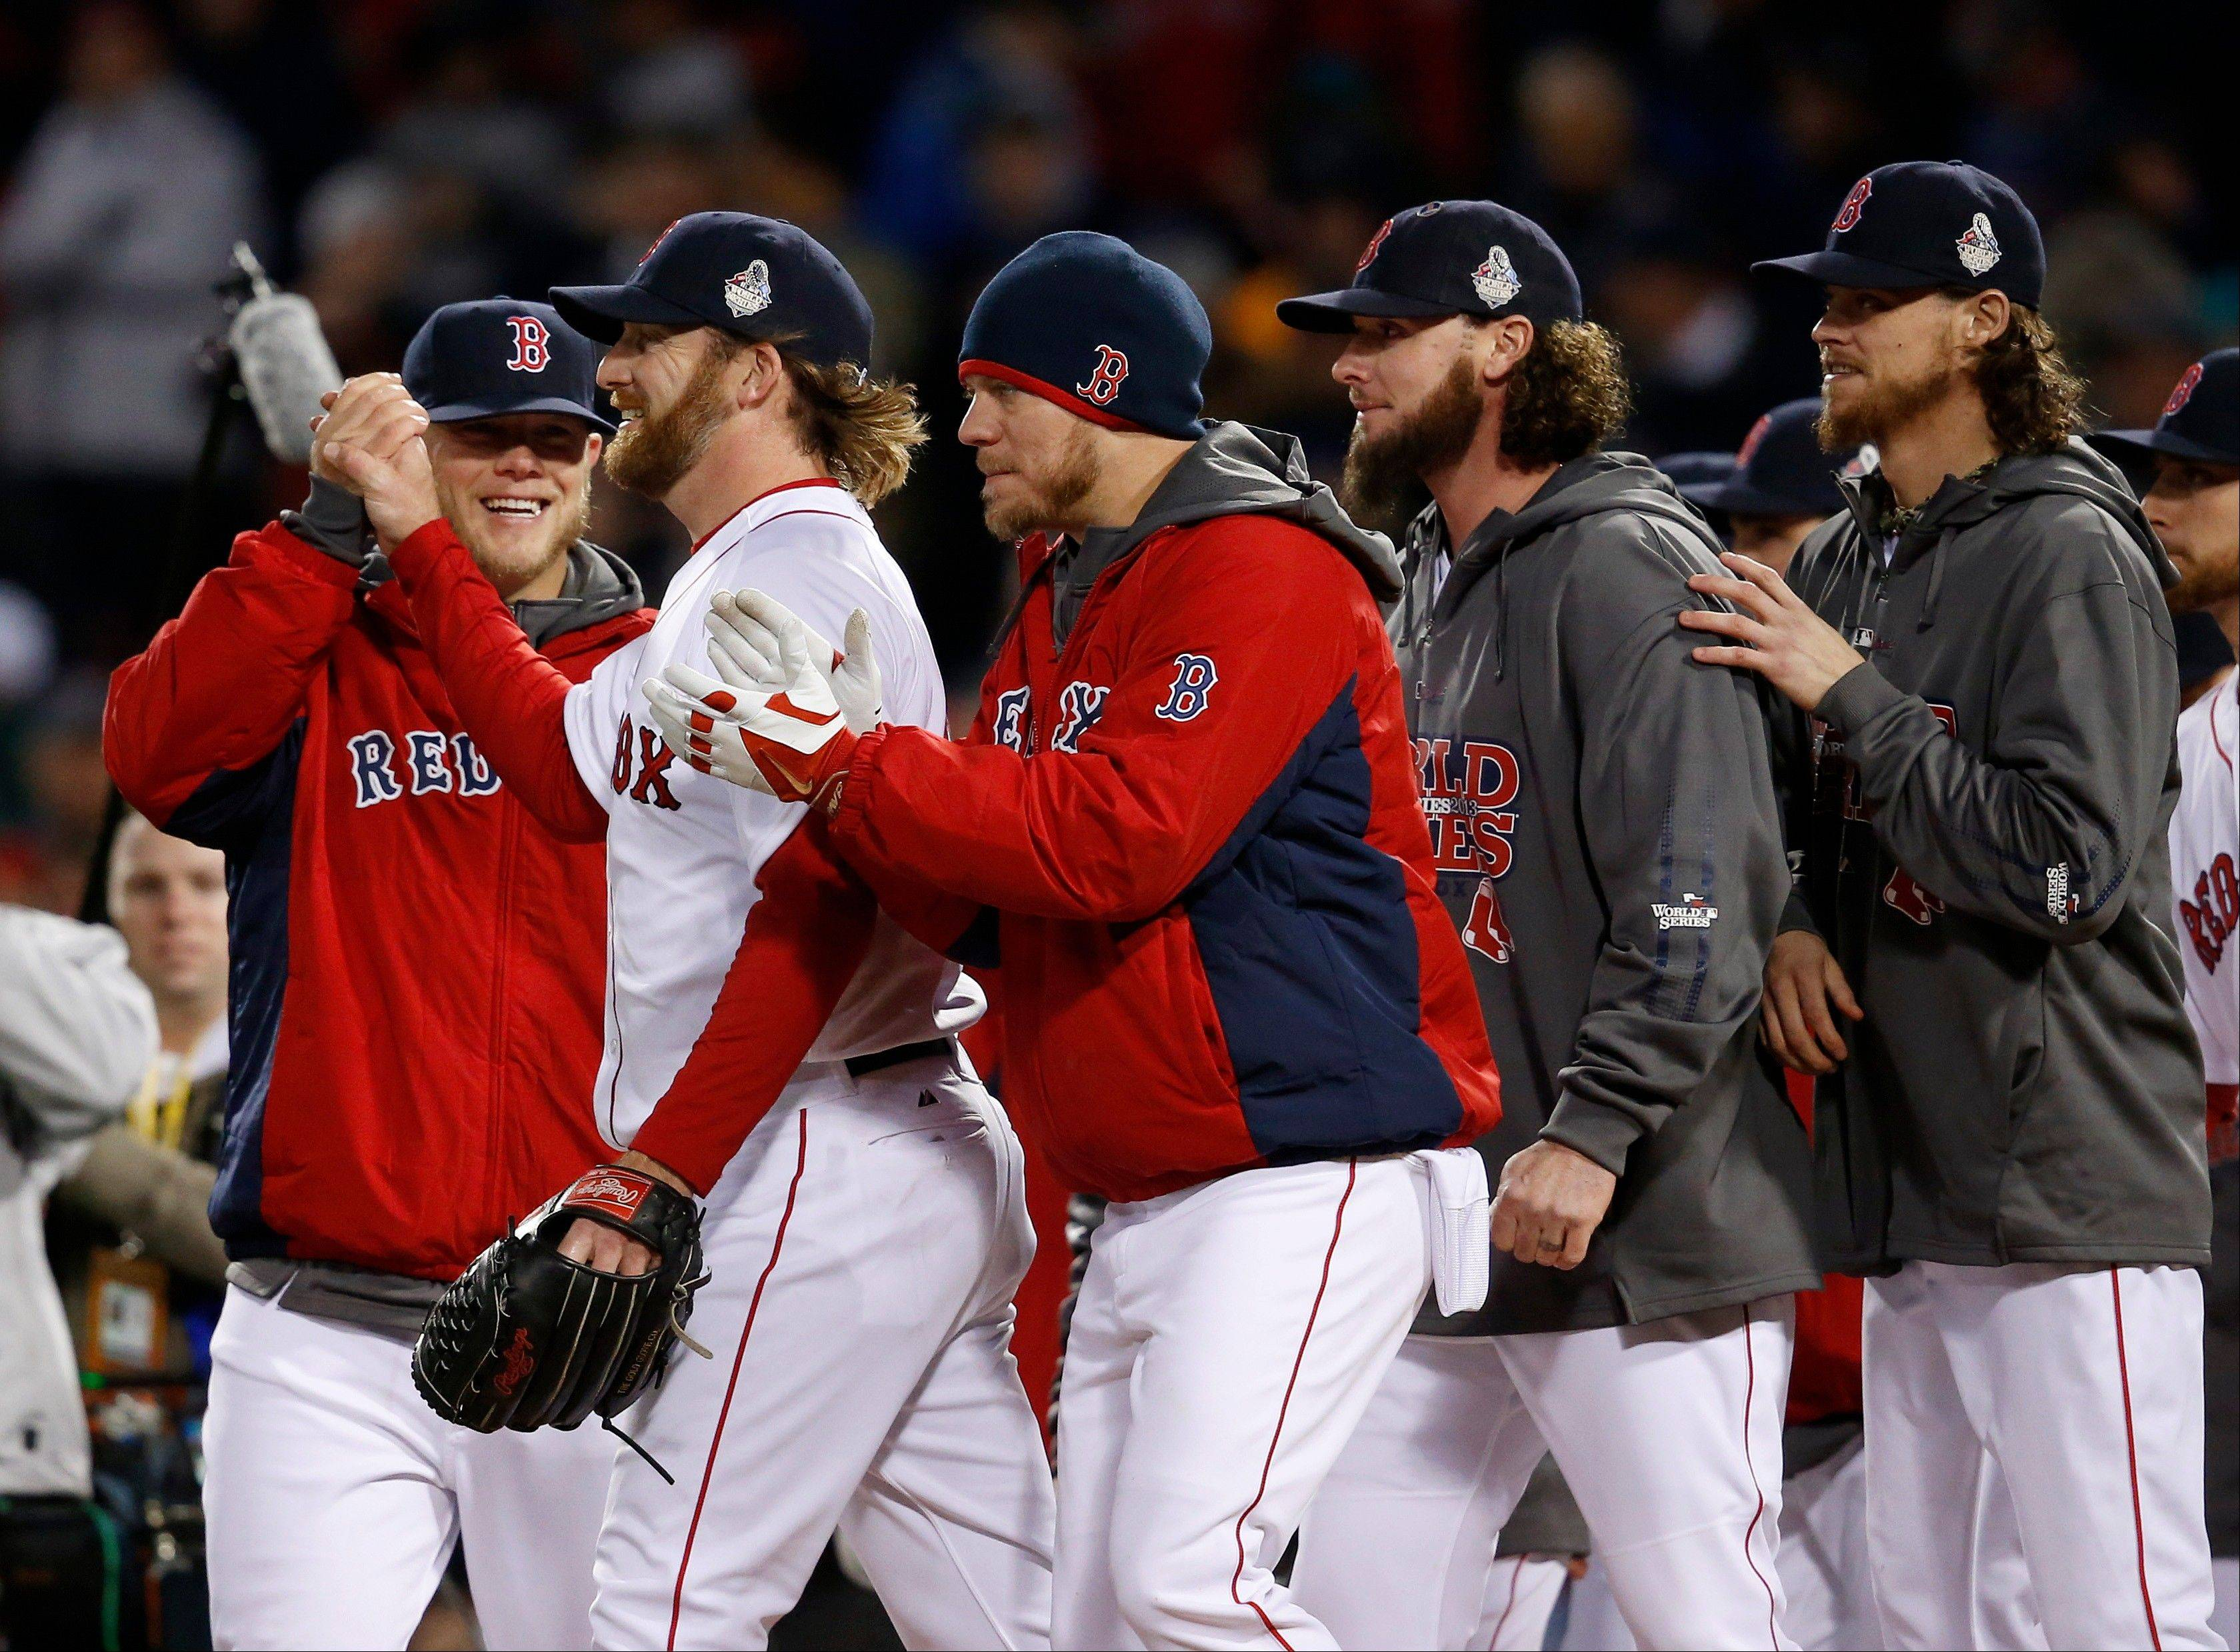 Boston Red Sox relief pitcher Ryan Dempster, second from left, is congratulated by teammates after the Red Sox defeated the St. Louis Cardinals, 8-1 Wednesday night in Game 1 of baseball's World Series in Boston.